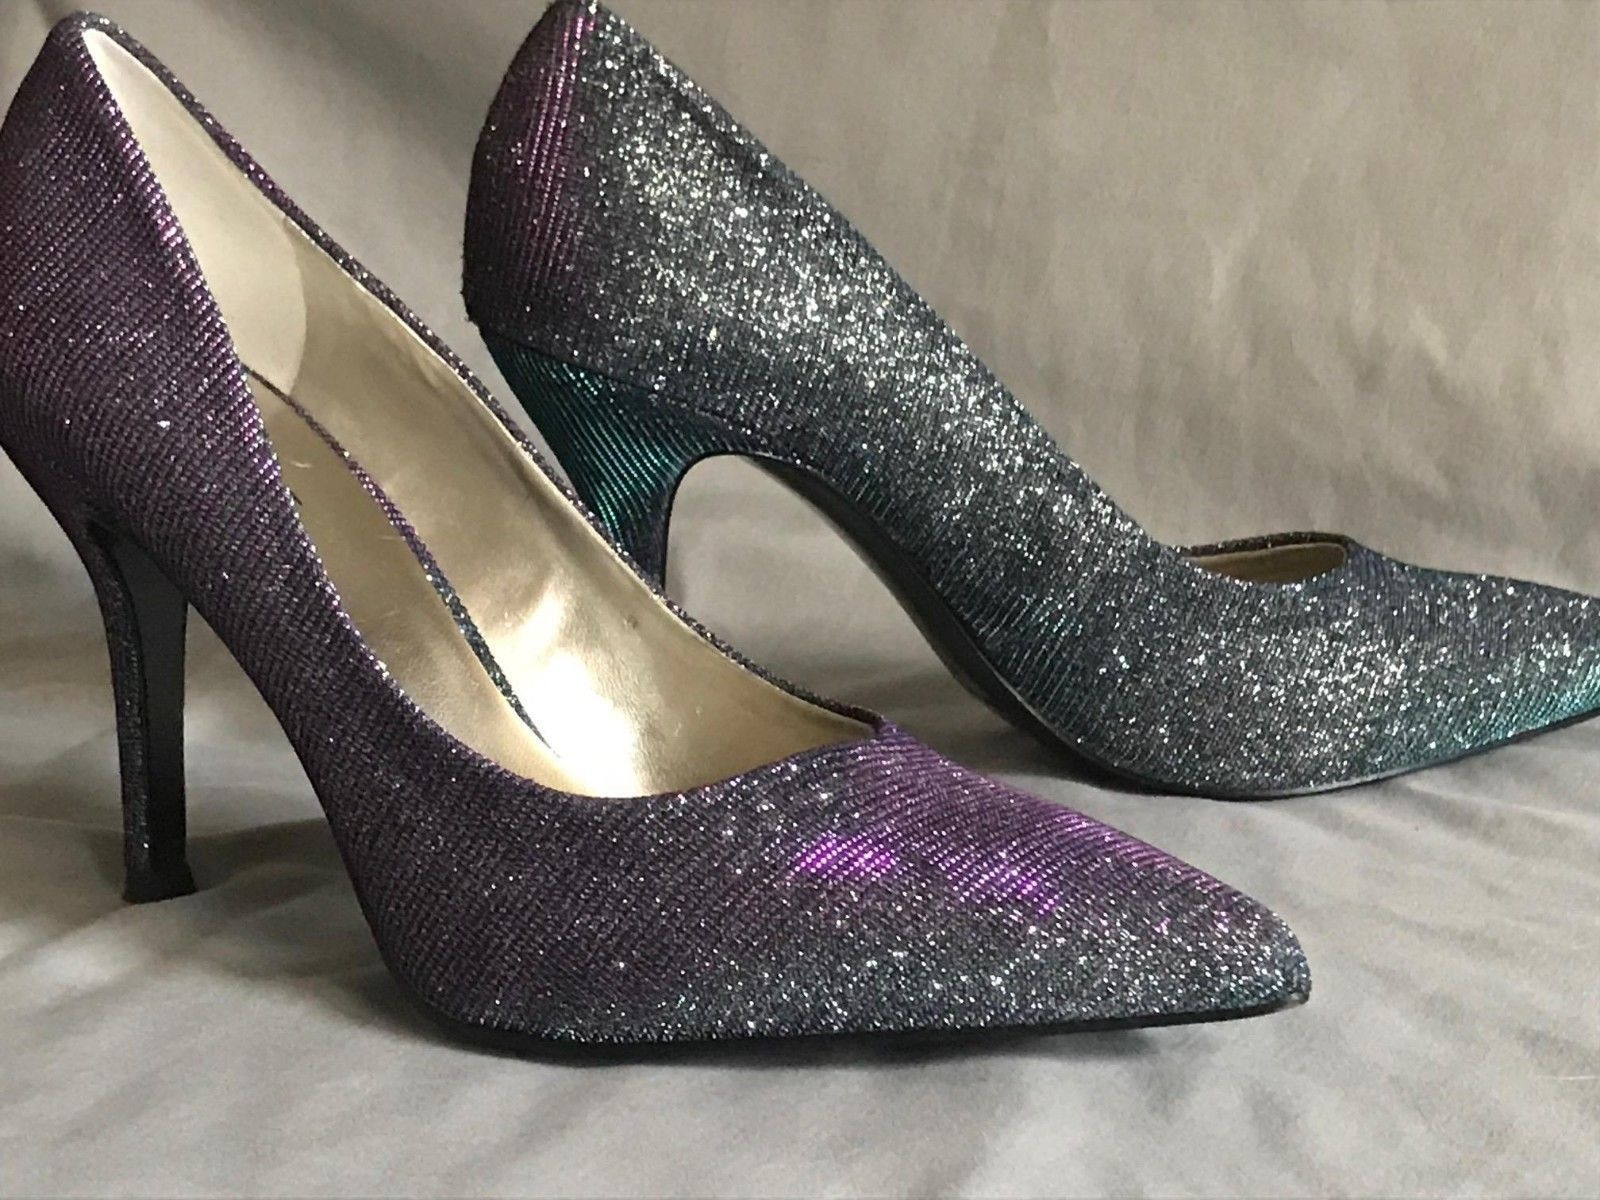 f9d42d16bfaa Nine West Womens Prom Heels Shoes Color Shifting Size 7 M NWOT ...